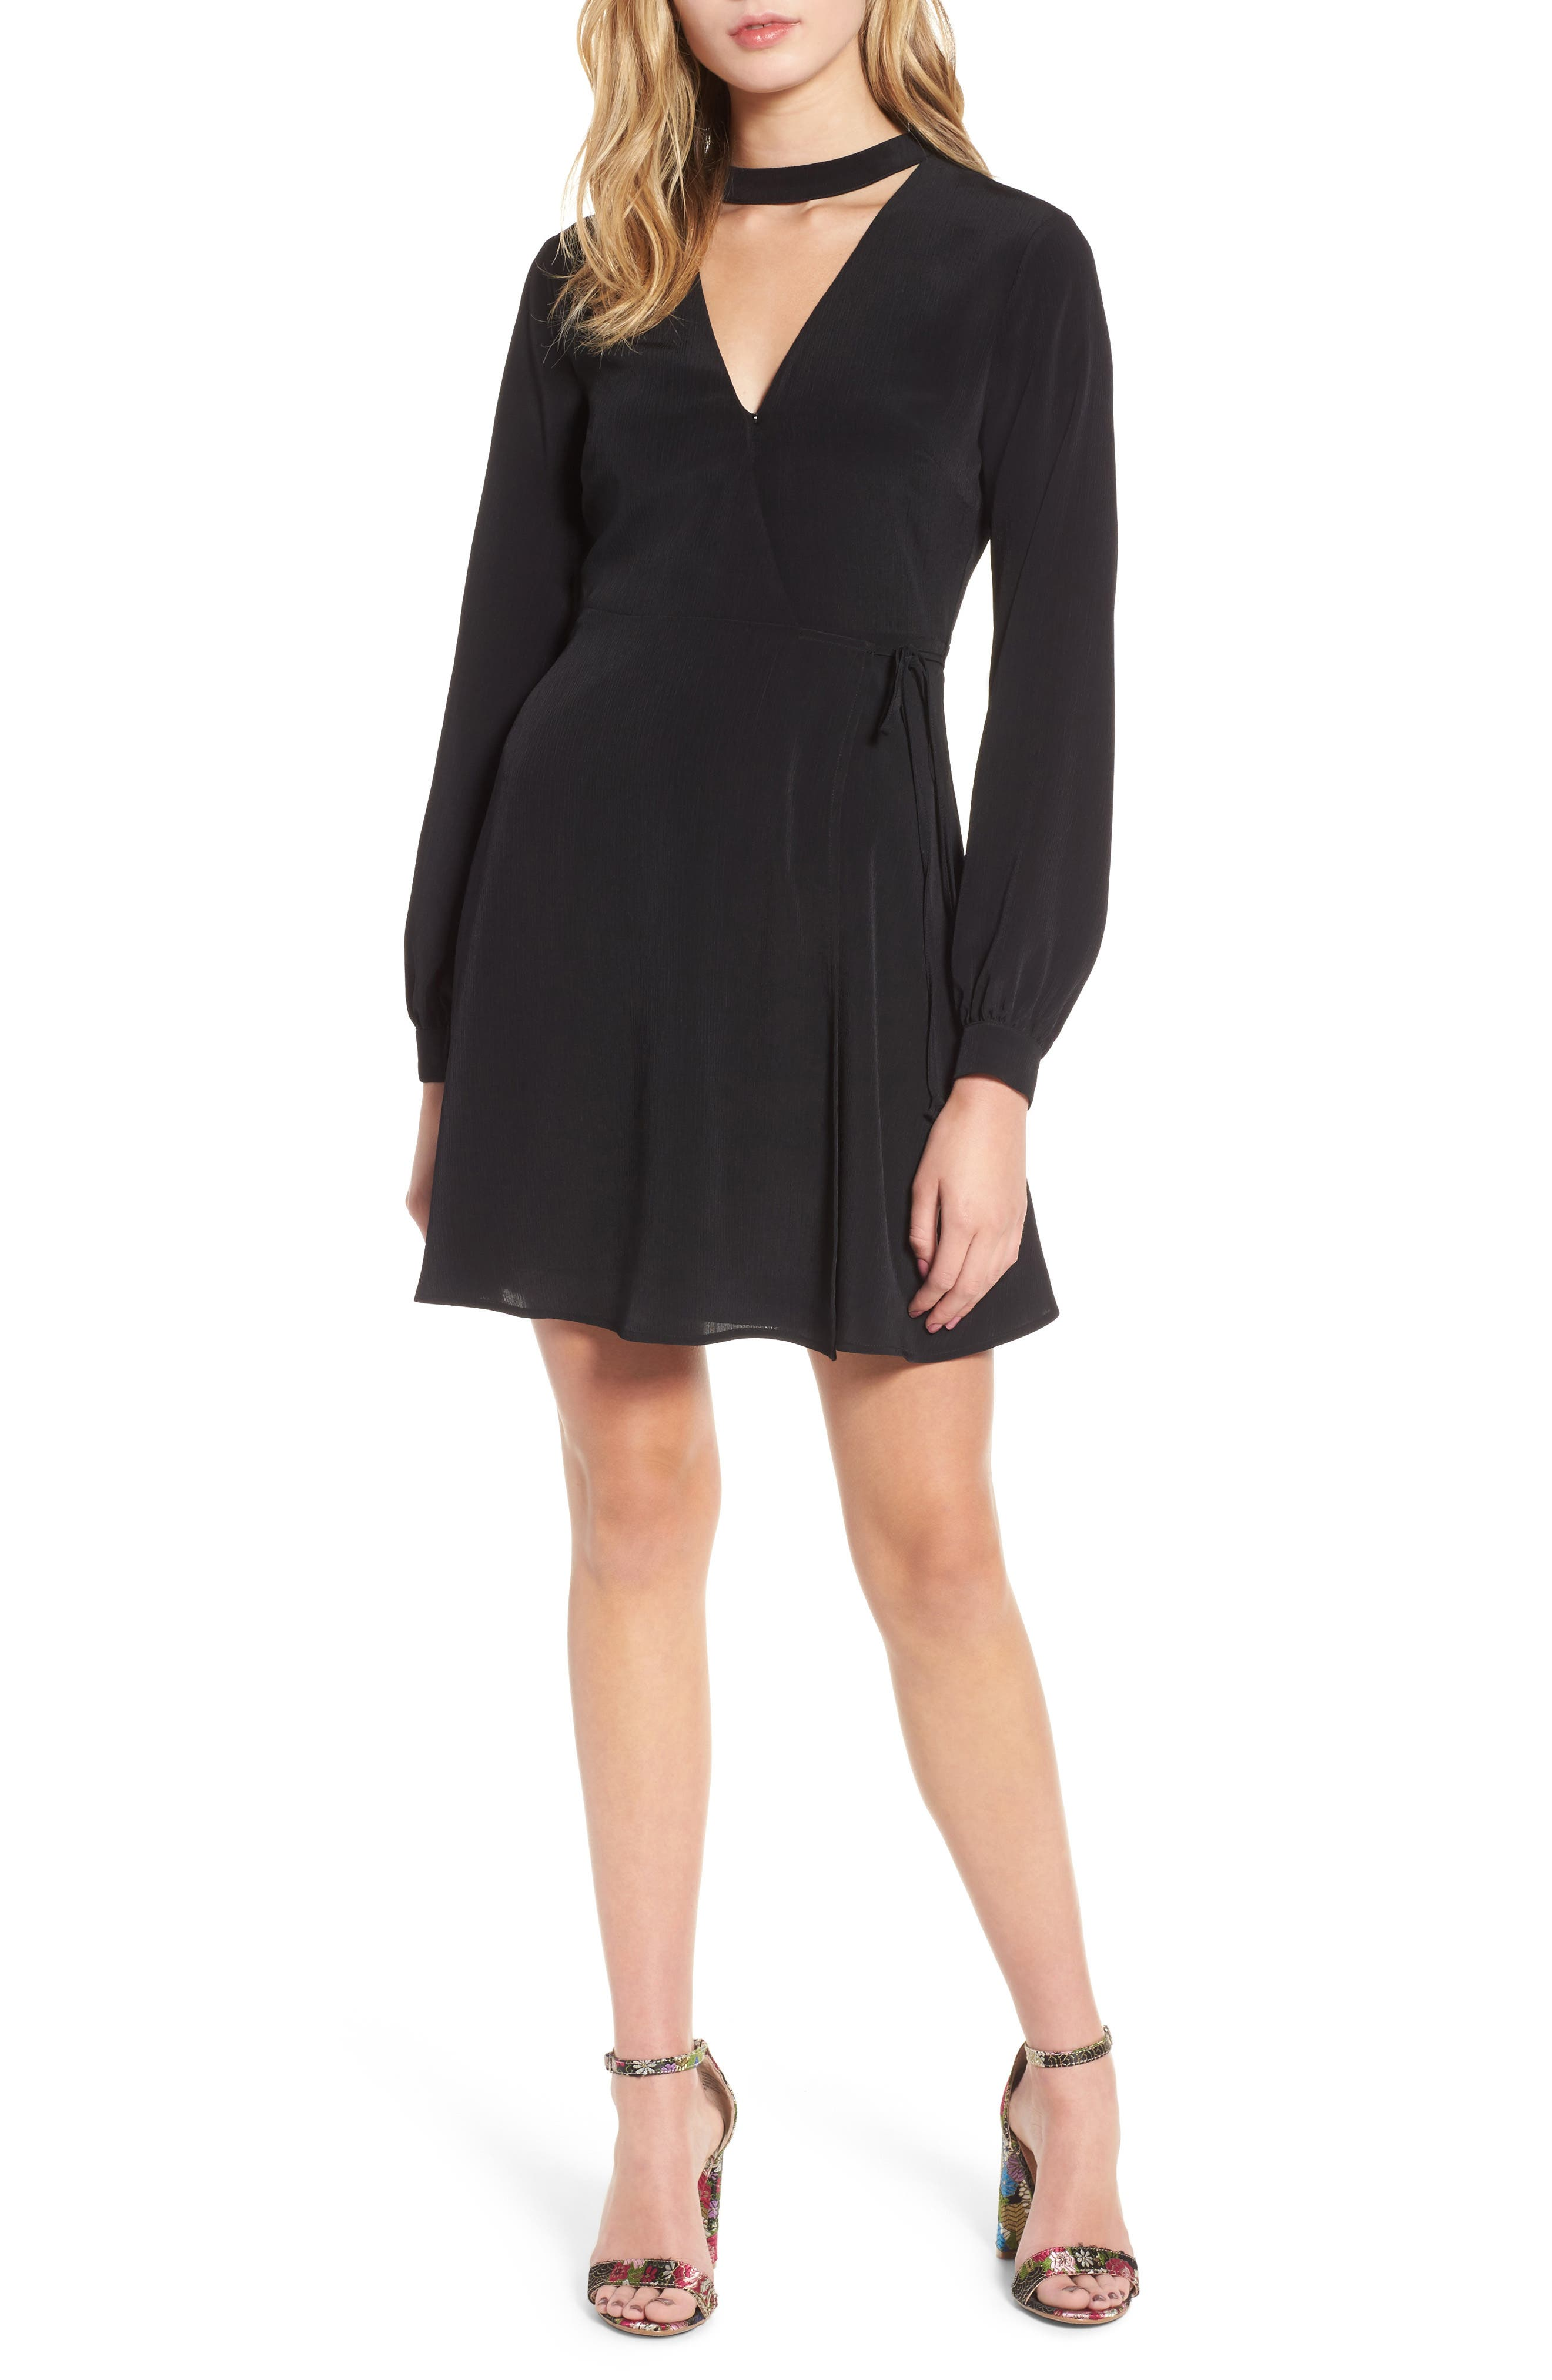 Choker Neck Wrap Dress